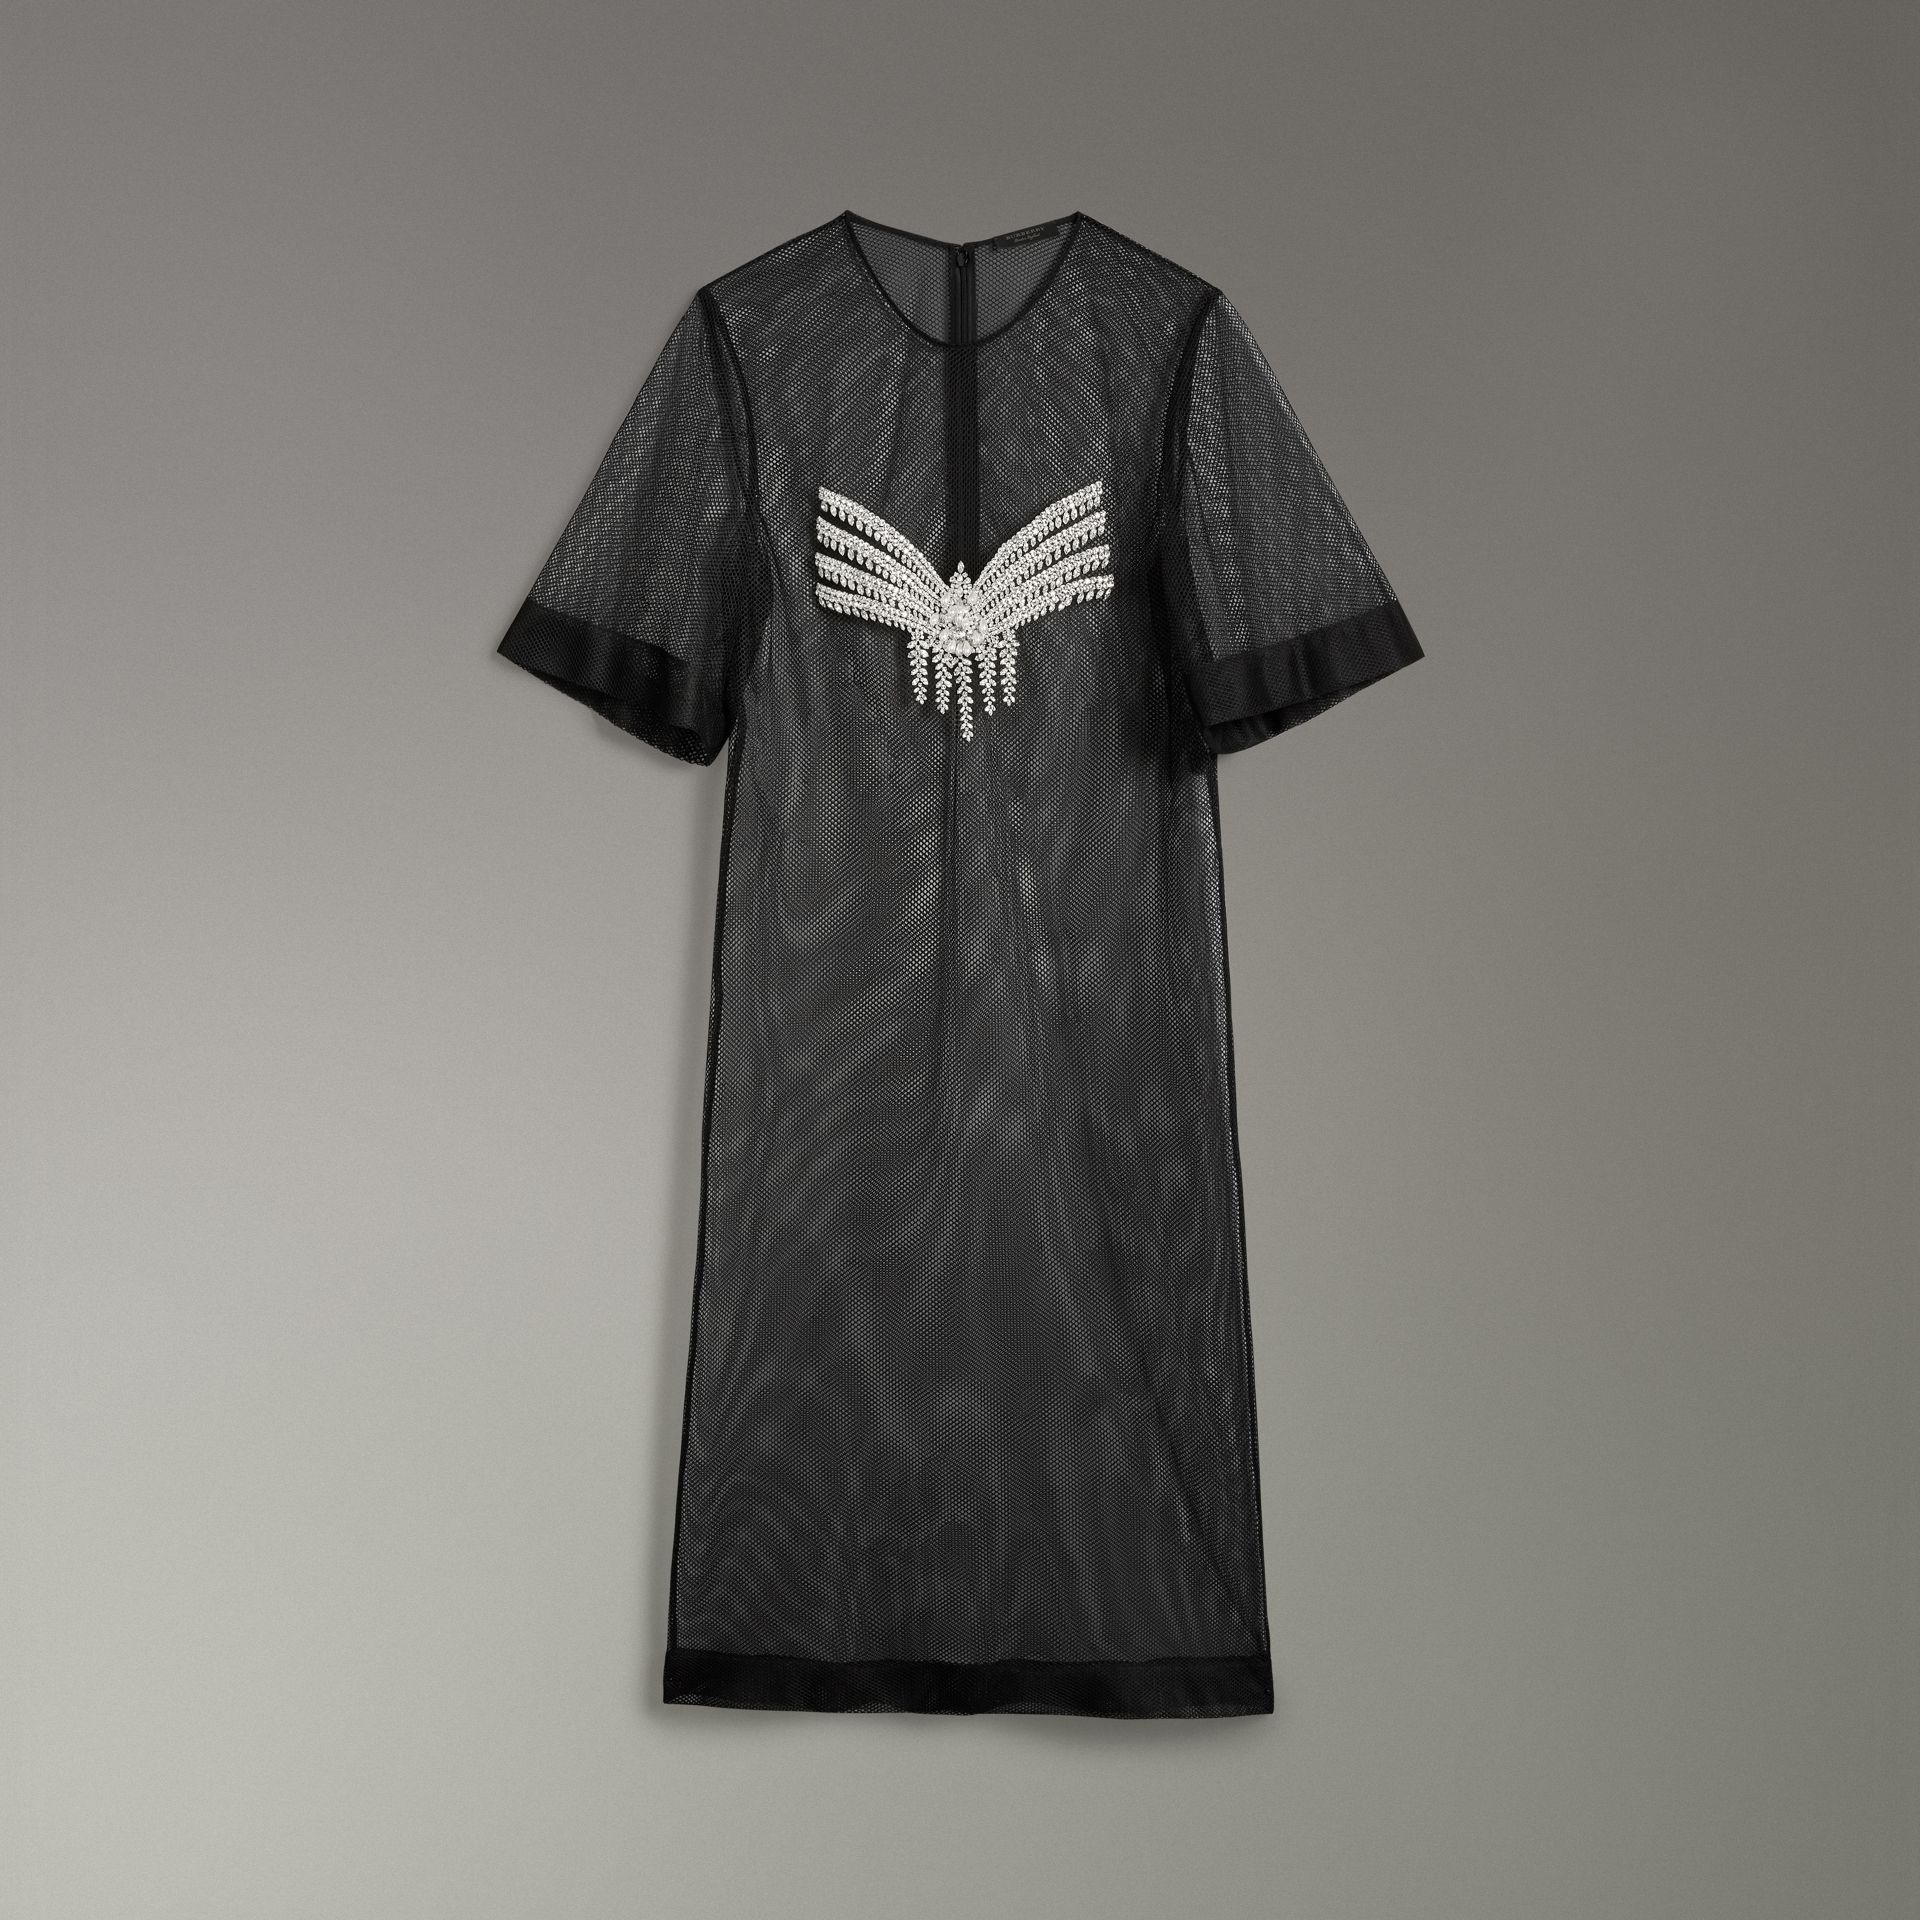 Robe t-shirt diaphane avec cristaux (Cristal) - Femme | Burberry Canada - photo de la galerie 3